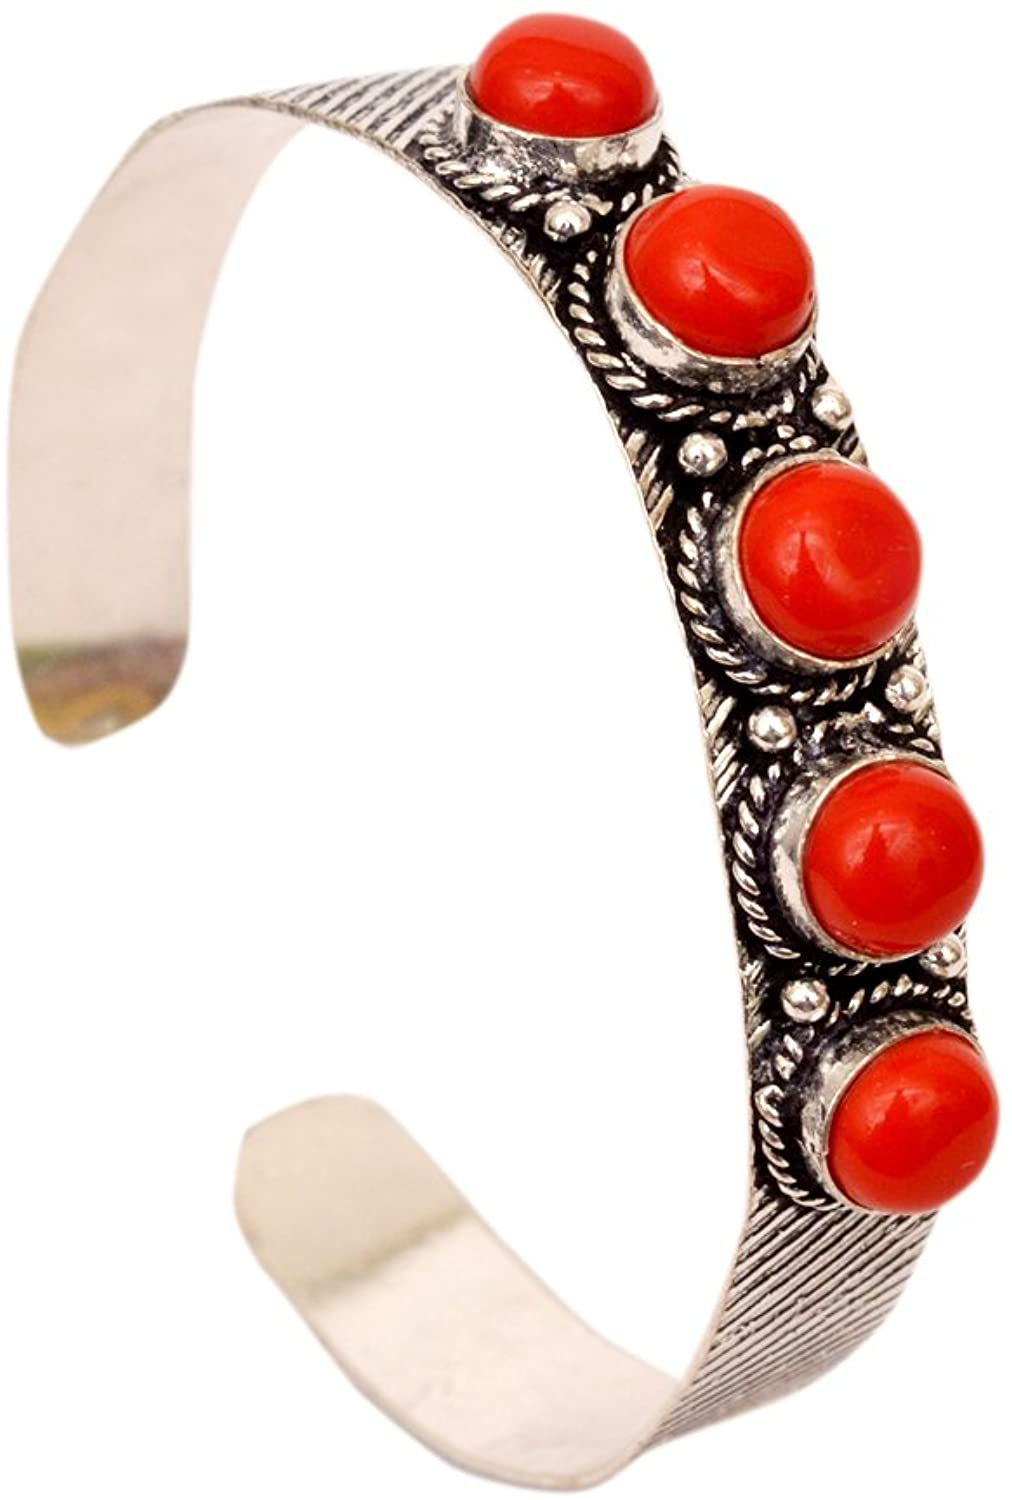 JD&JD Handmade Silver Plated Coral Gemstone Adjustable Bangle Bracelet Jewelry KE1122 GM16